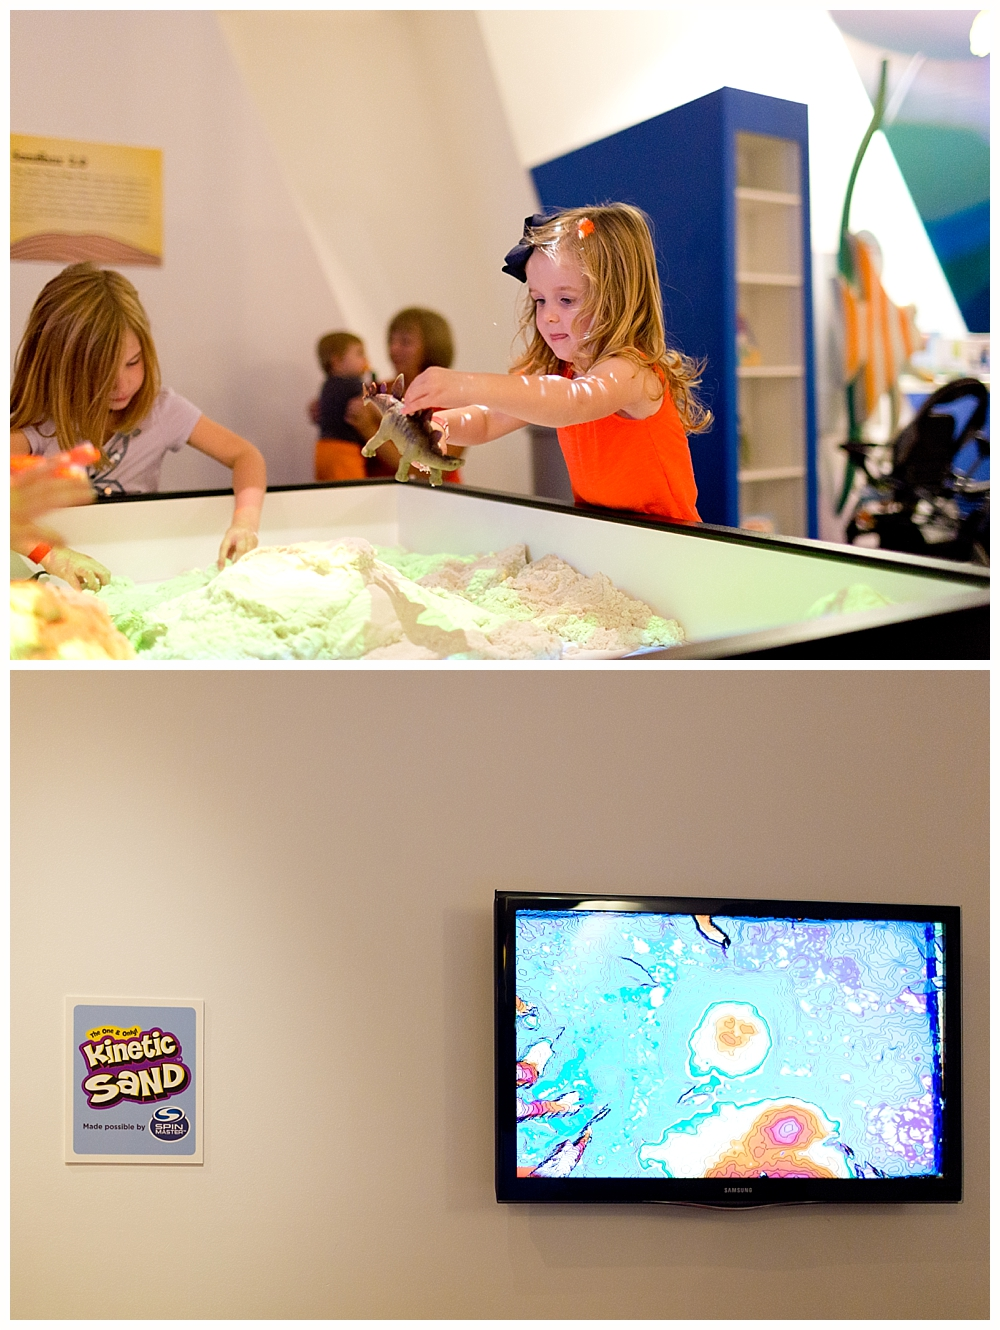 little girl playing with kinetic sand topography exhibit at Strong National Museum of Play